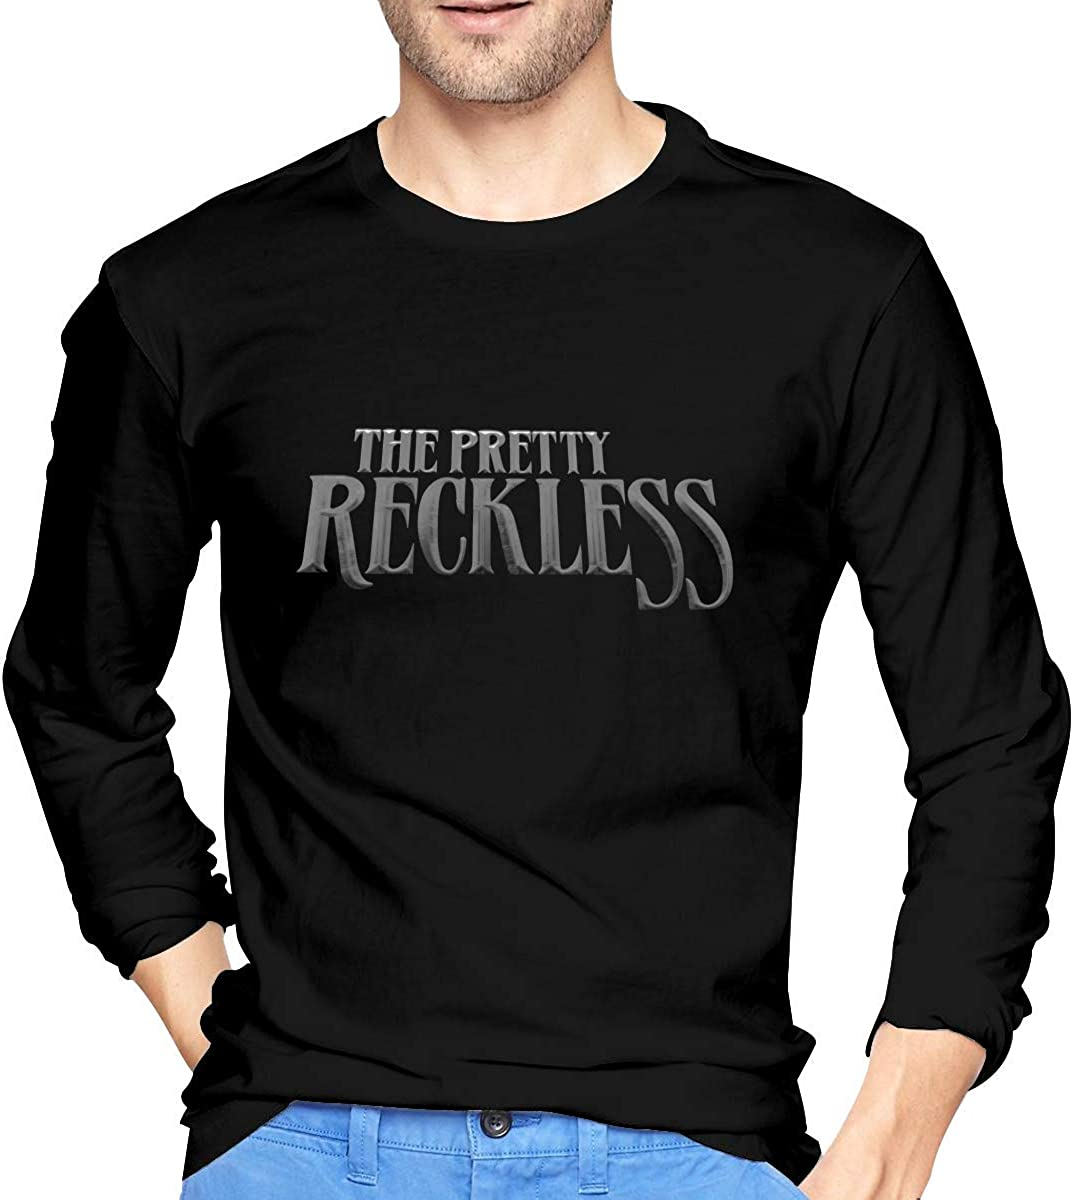 Henrnt The Pretty Reckless Men's Comfort Soft Long Sleeve Outdoor T Shirt 100% Cotton Printing T-Shirts tee Black